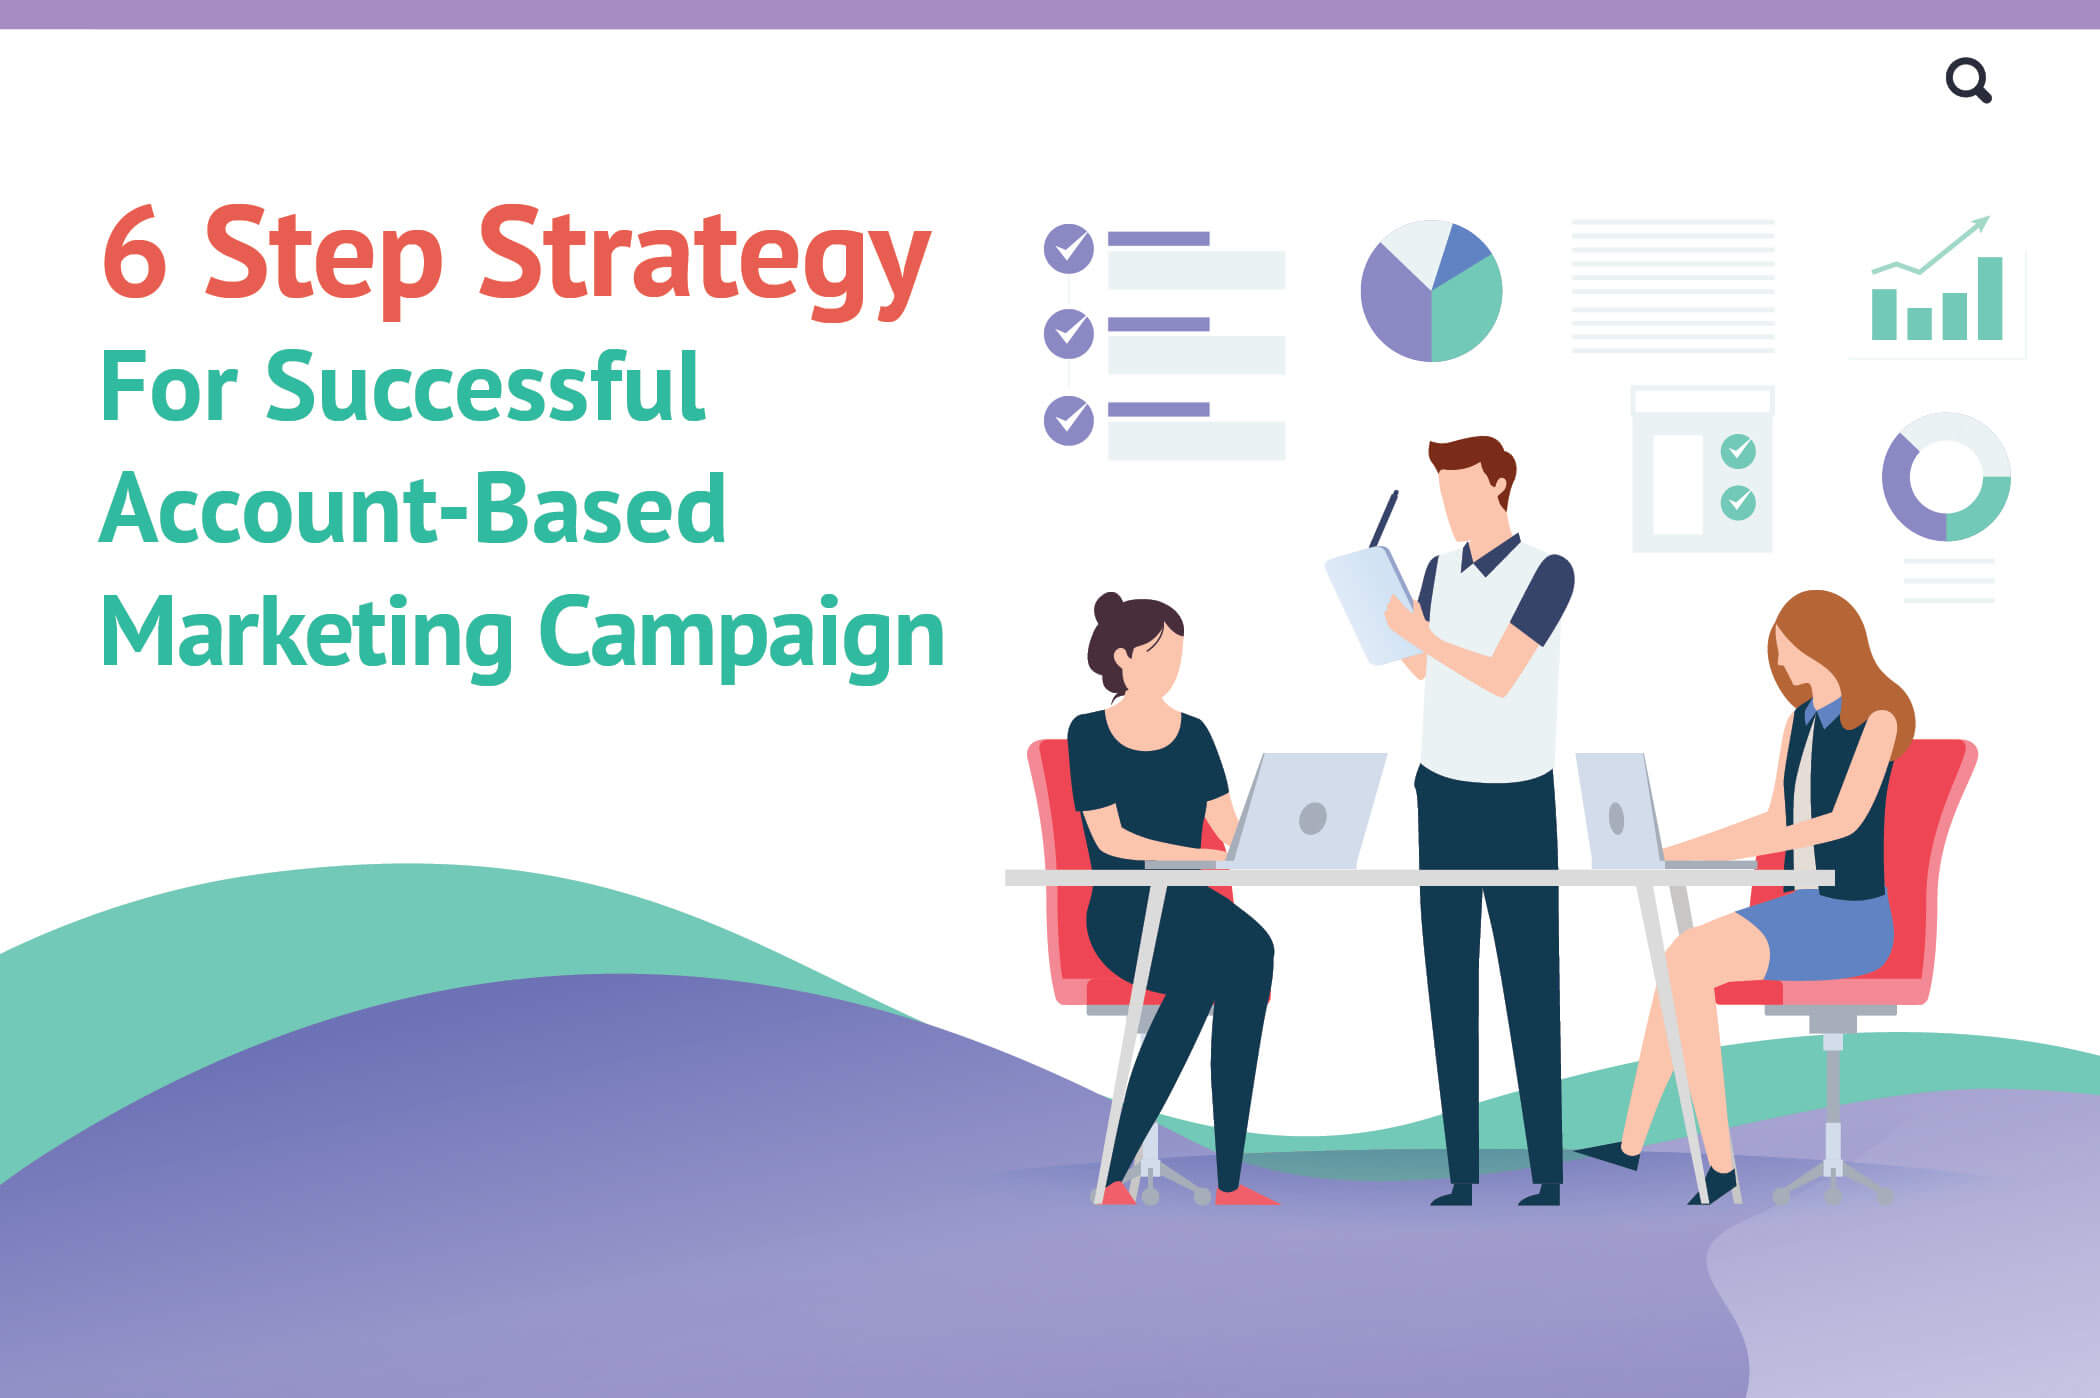 6 Step Strategy For Successful Account Based Marketing Campaign